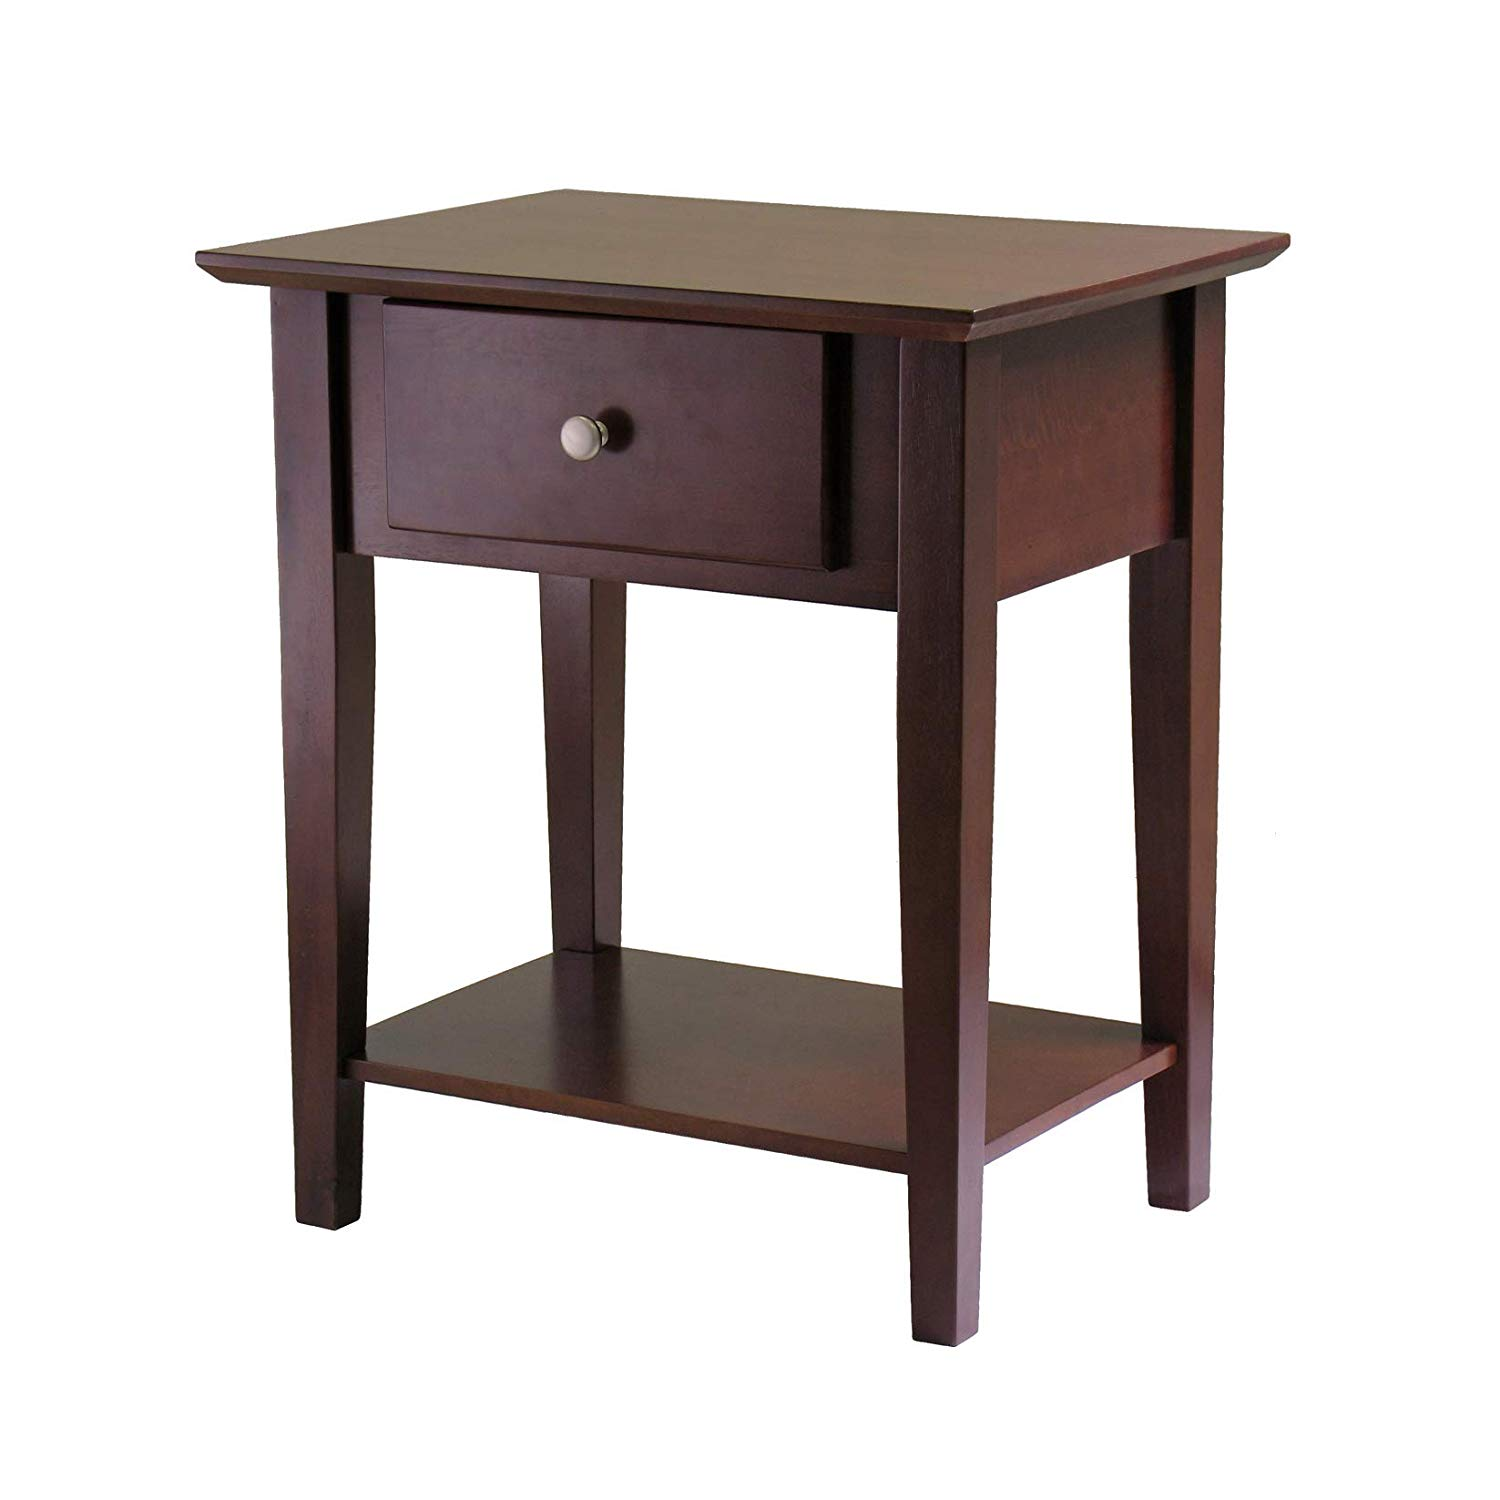 winsome wood shaker accent table antique walnut wooden kitchen dining shelby chest small marble keter cooler side decor quality patio furniture piece coffee set wall file